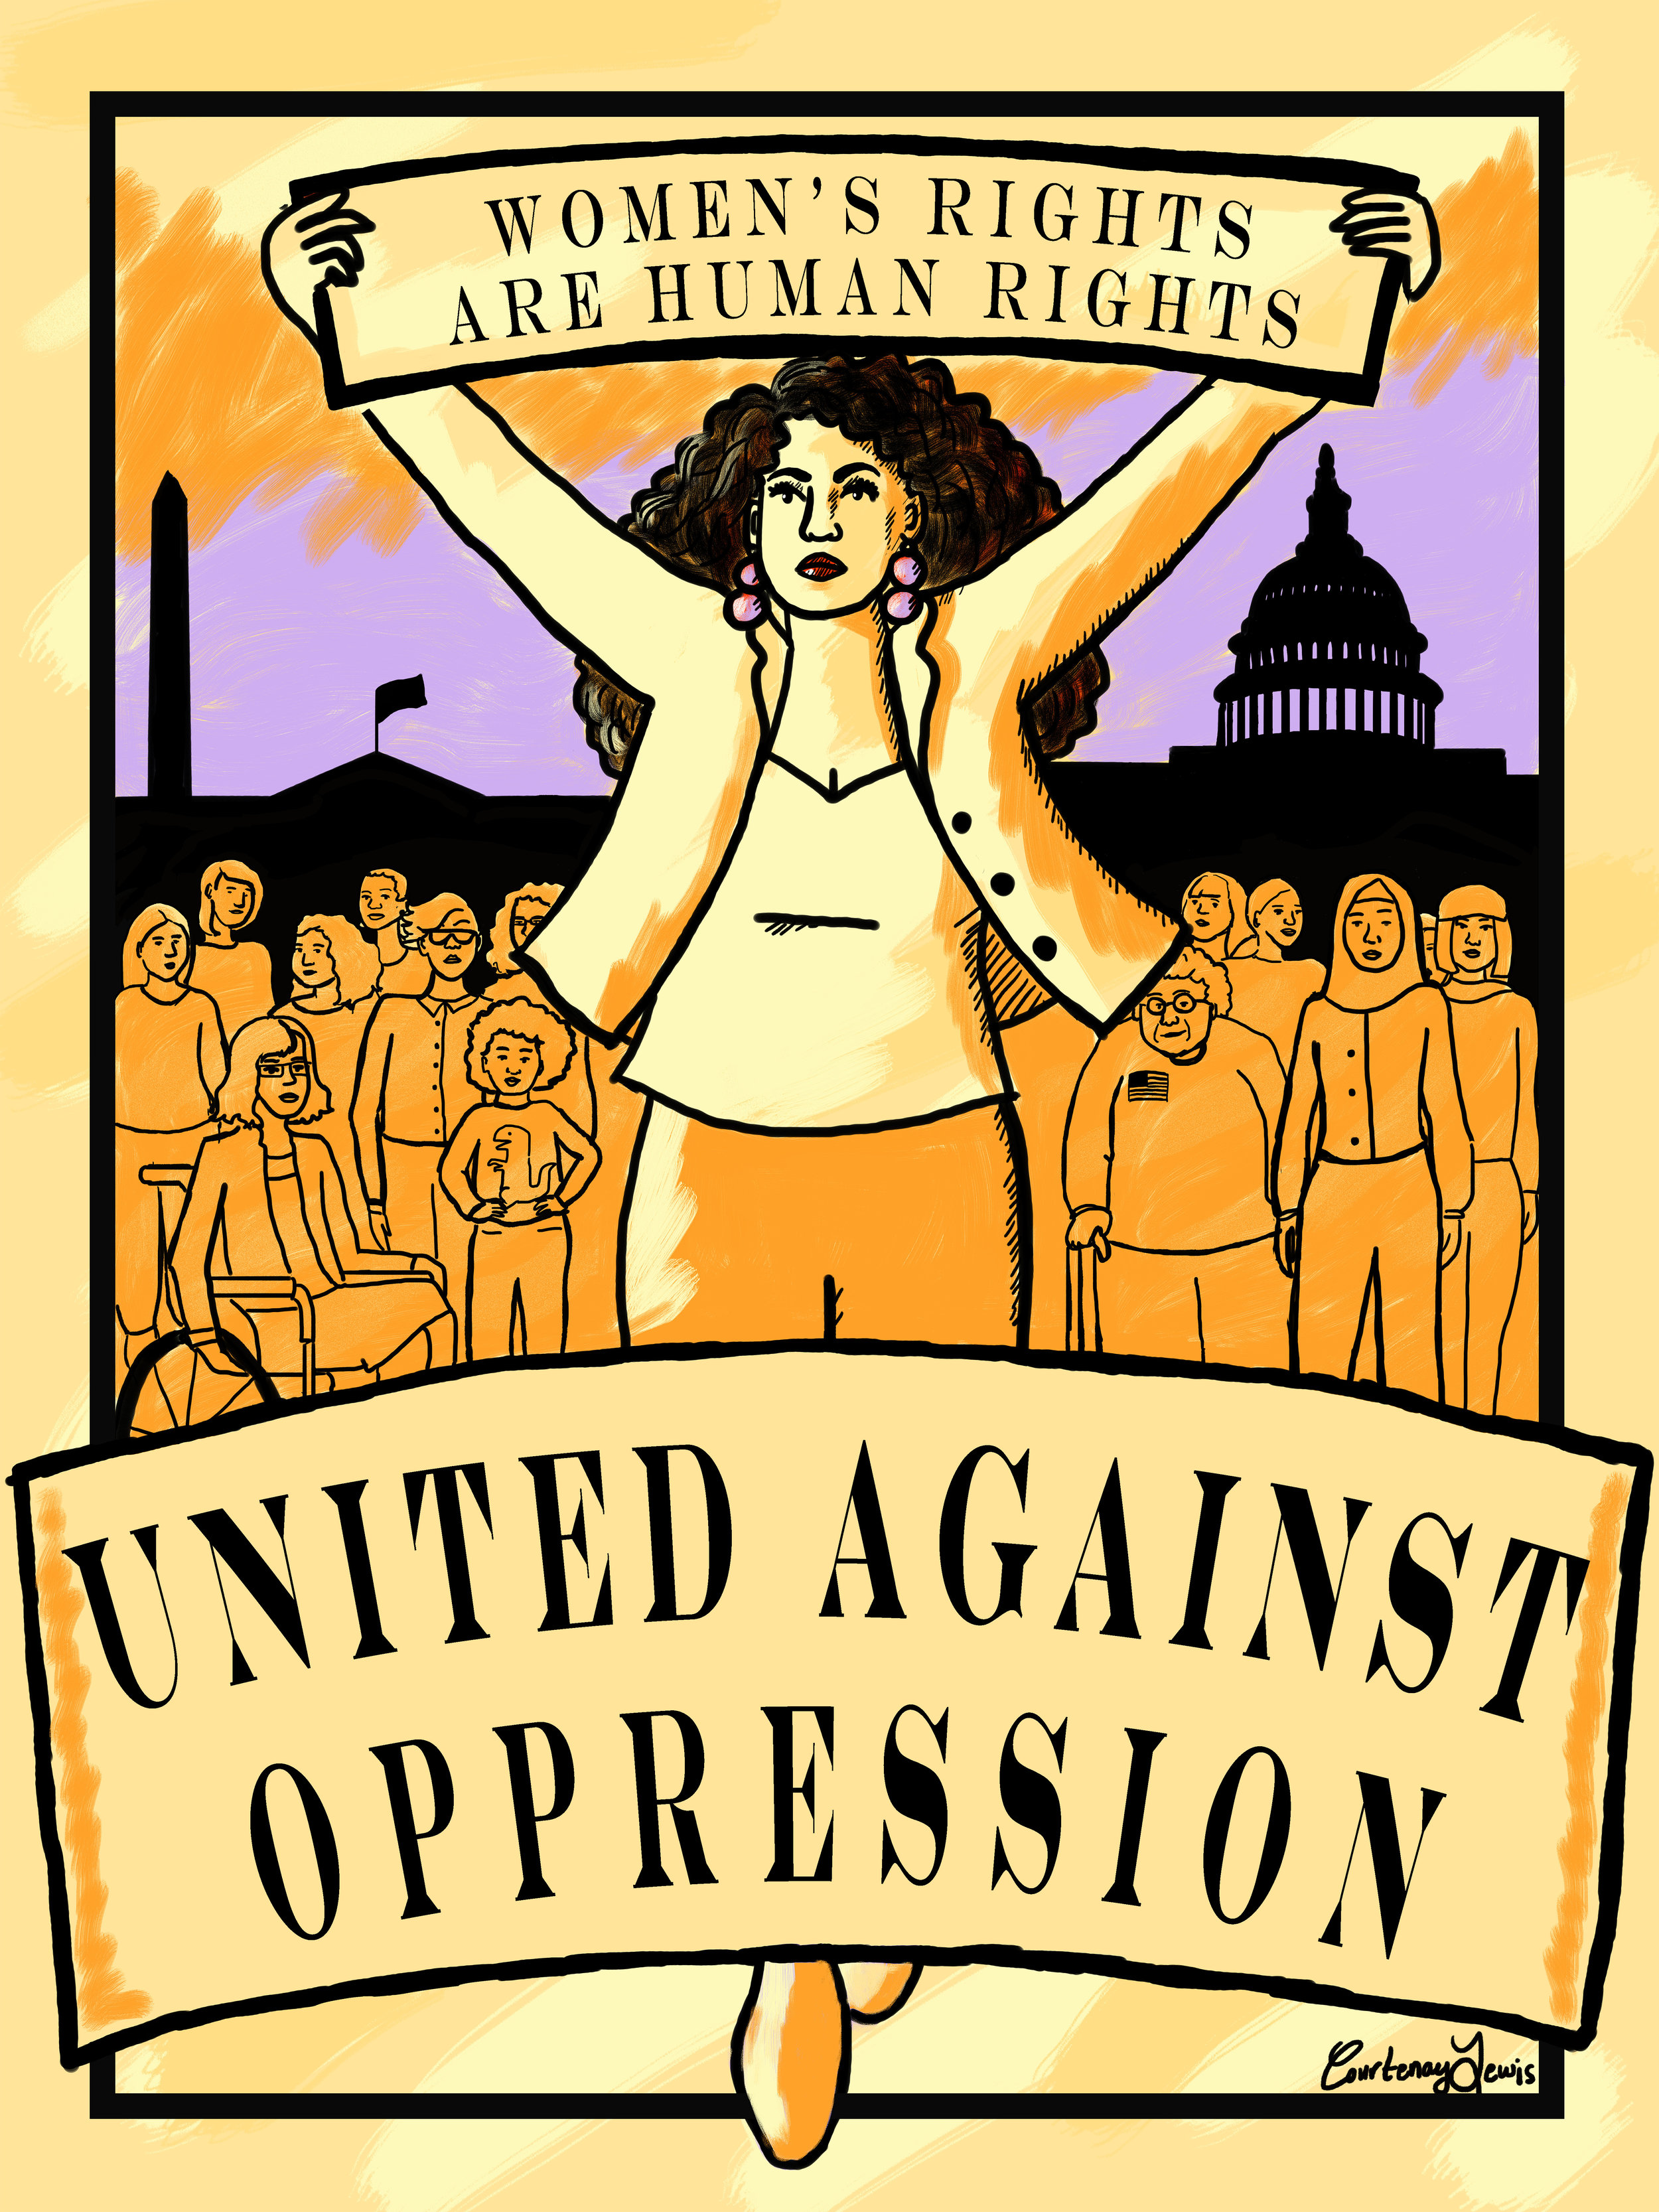 """Poster selected for the Amplifier Foundation's """"Hear Our Voice"""" exhibition celebrating the Women's March on Washington (2017)"""